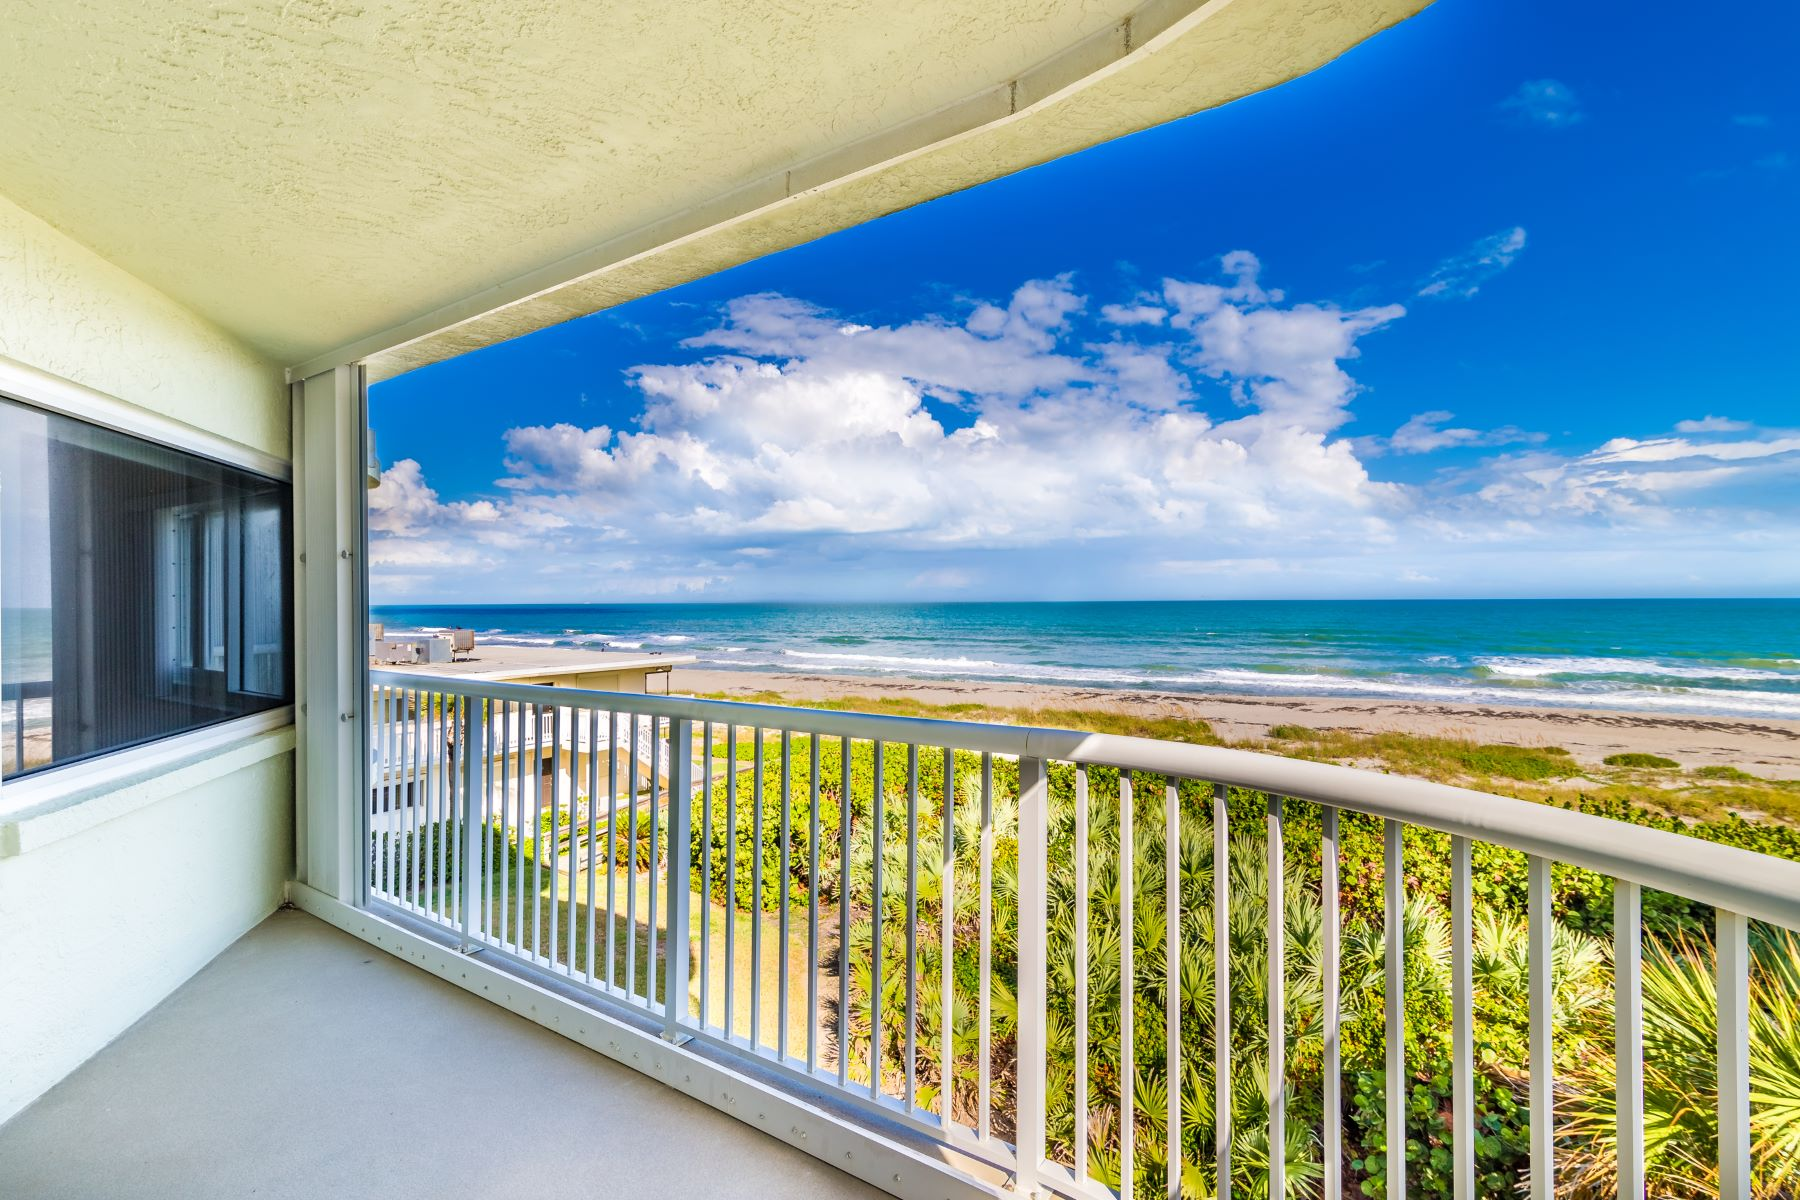 Casa Playa Condo 3031 South Atlantic Avenue #303 Cocoa Beach, Florida 32931 Vereinigte Staaten